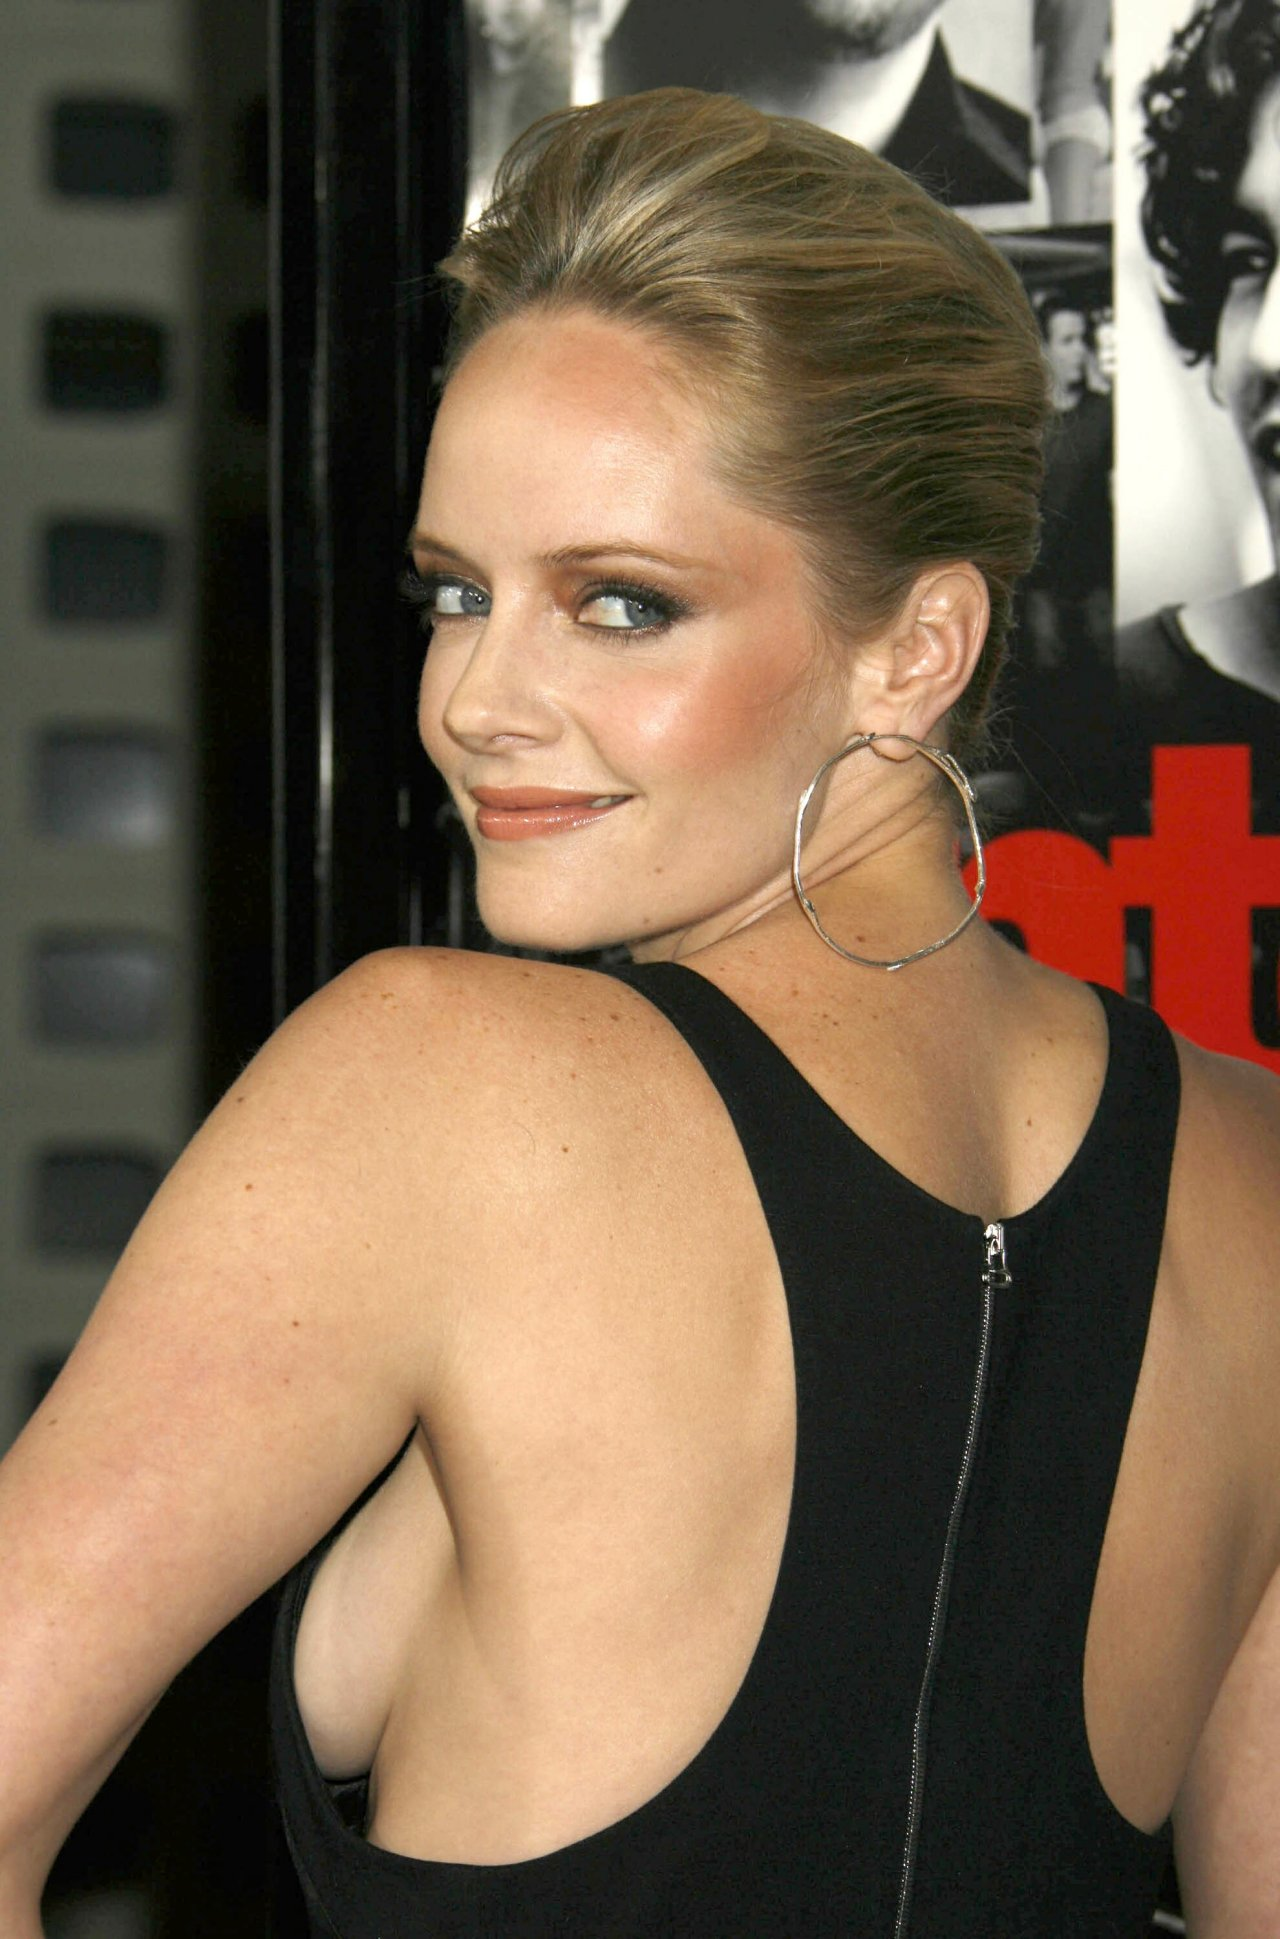 Marley Shelton - Beautiful Photos